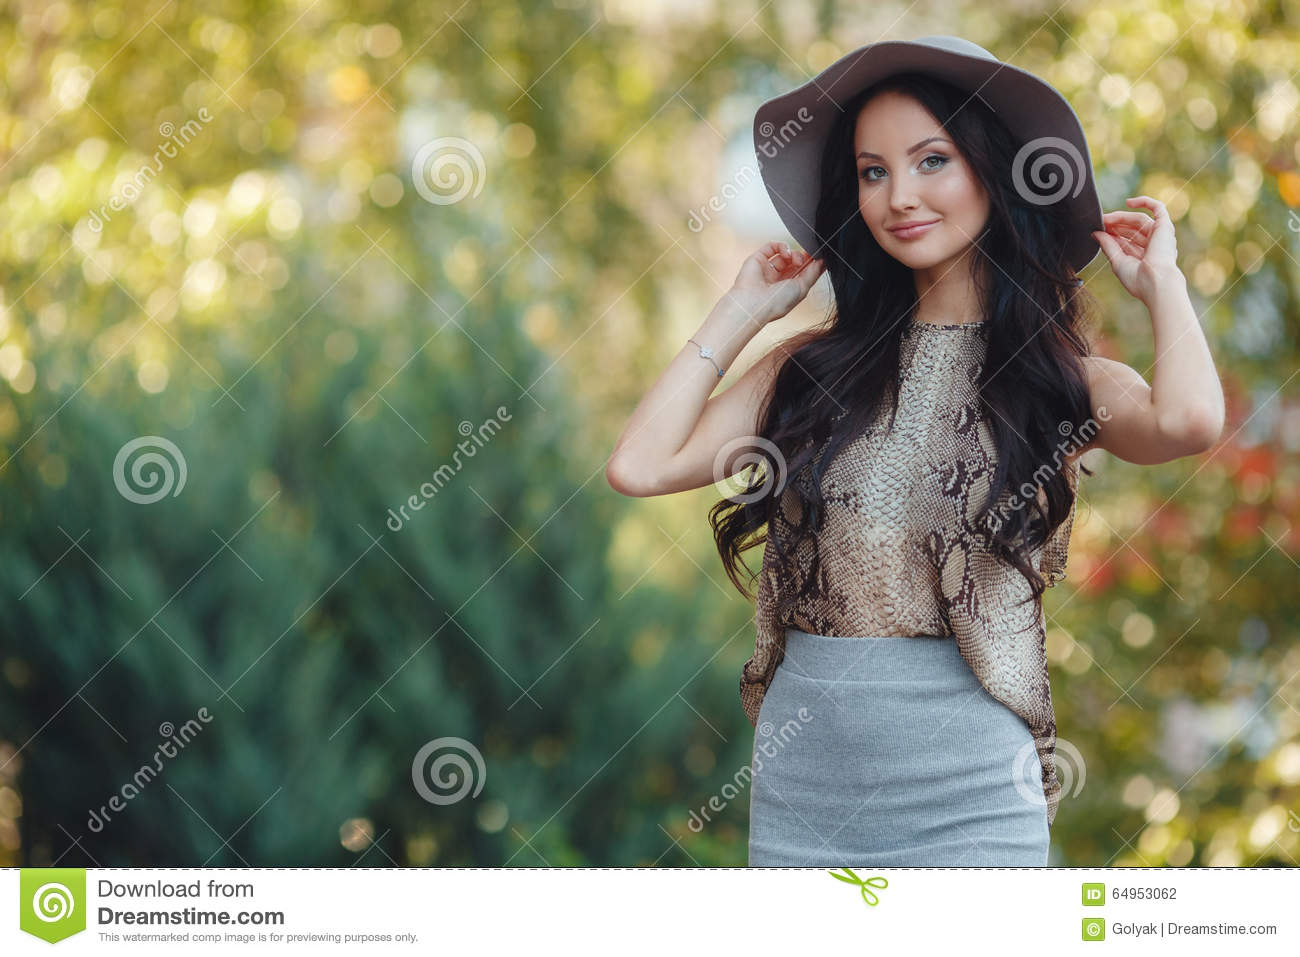 Fashionable girl in hat outdoor. Summer portrait of a beautiful woman with  long black hair b4ccd40c5afb